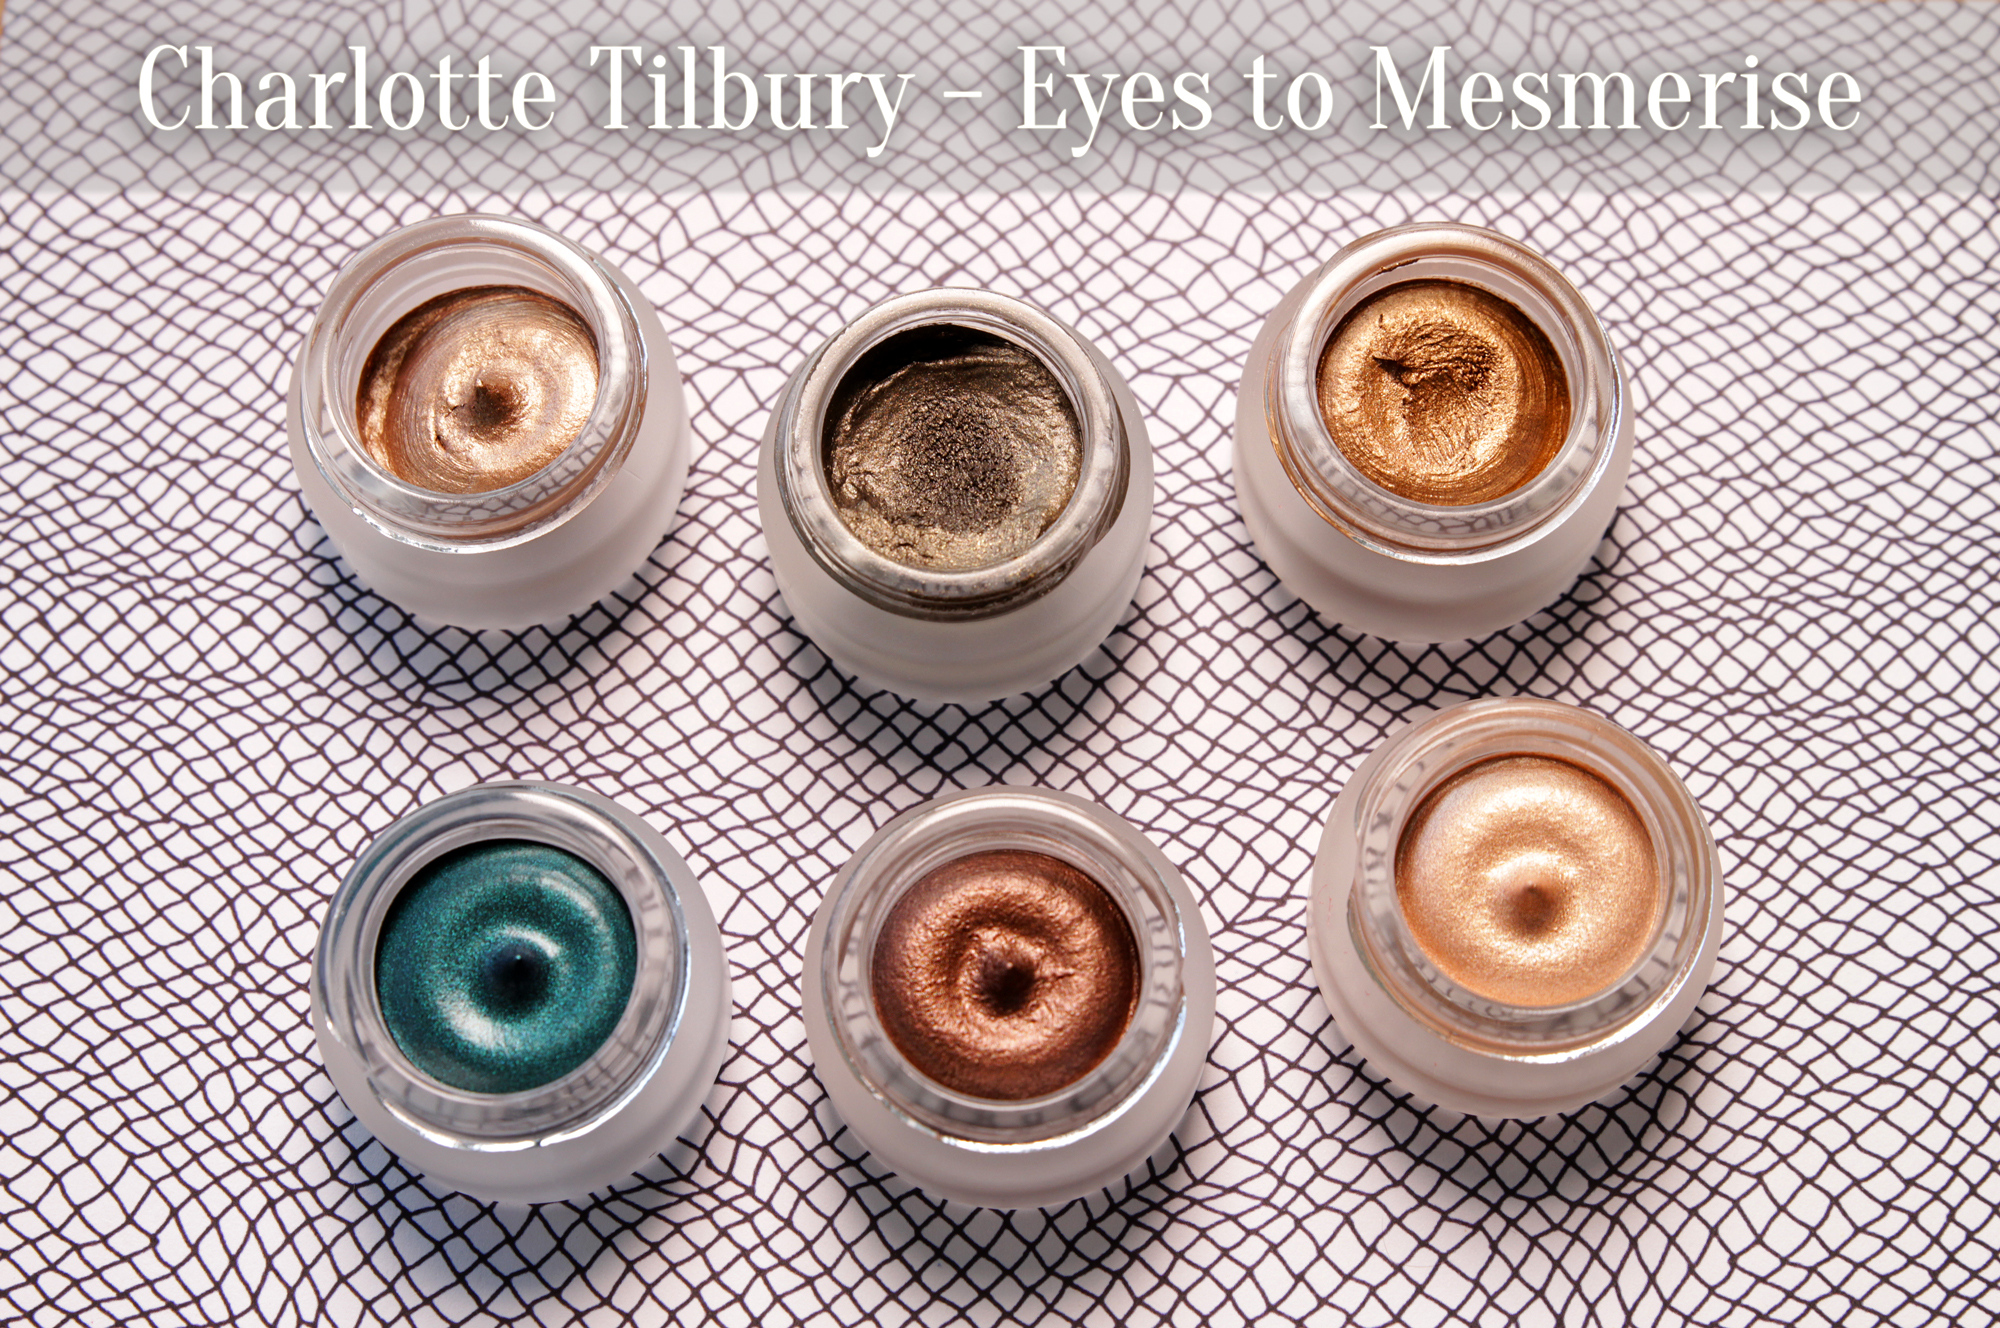 Charlotte Tilbury – Eyes to Mesmerise Cream Eyeshadow Review & Swatches